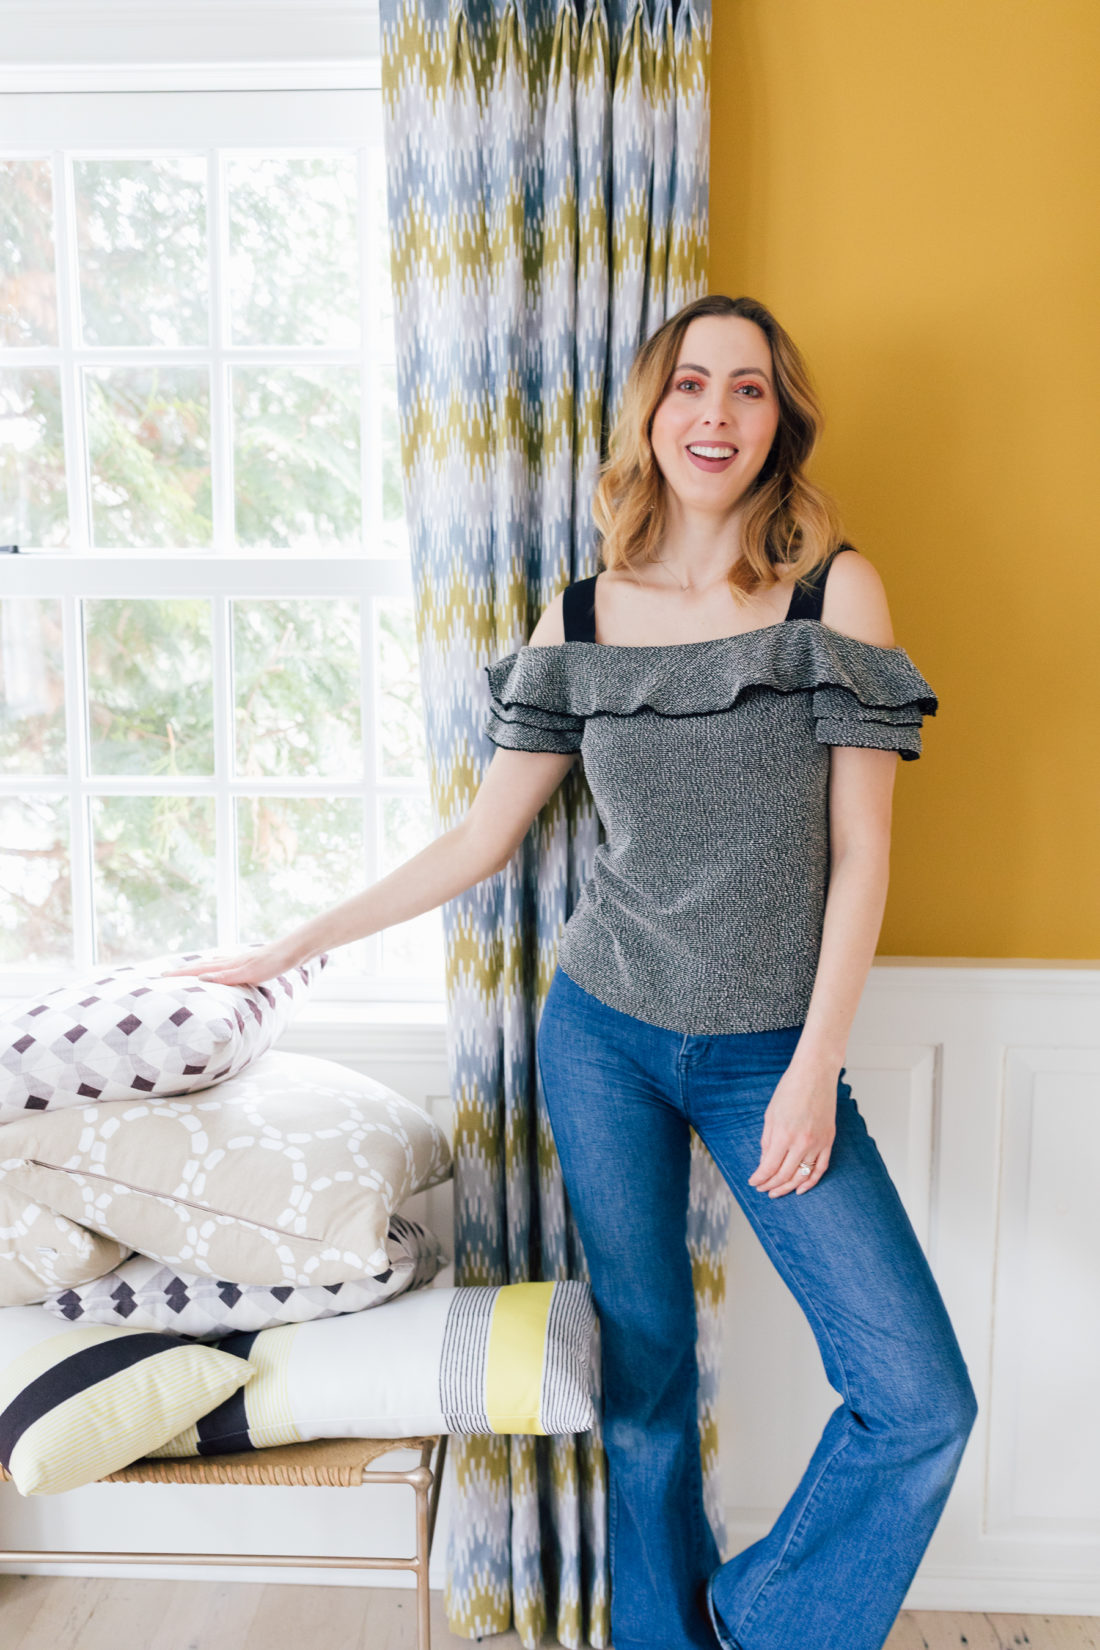 Eva Amurri Martino wears jeans and an off the shoulder top, and stands in the living room of her connecticut home as she prepares to move house